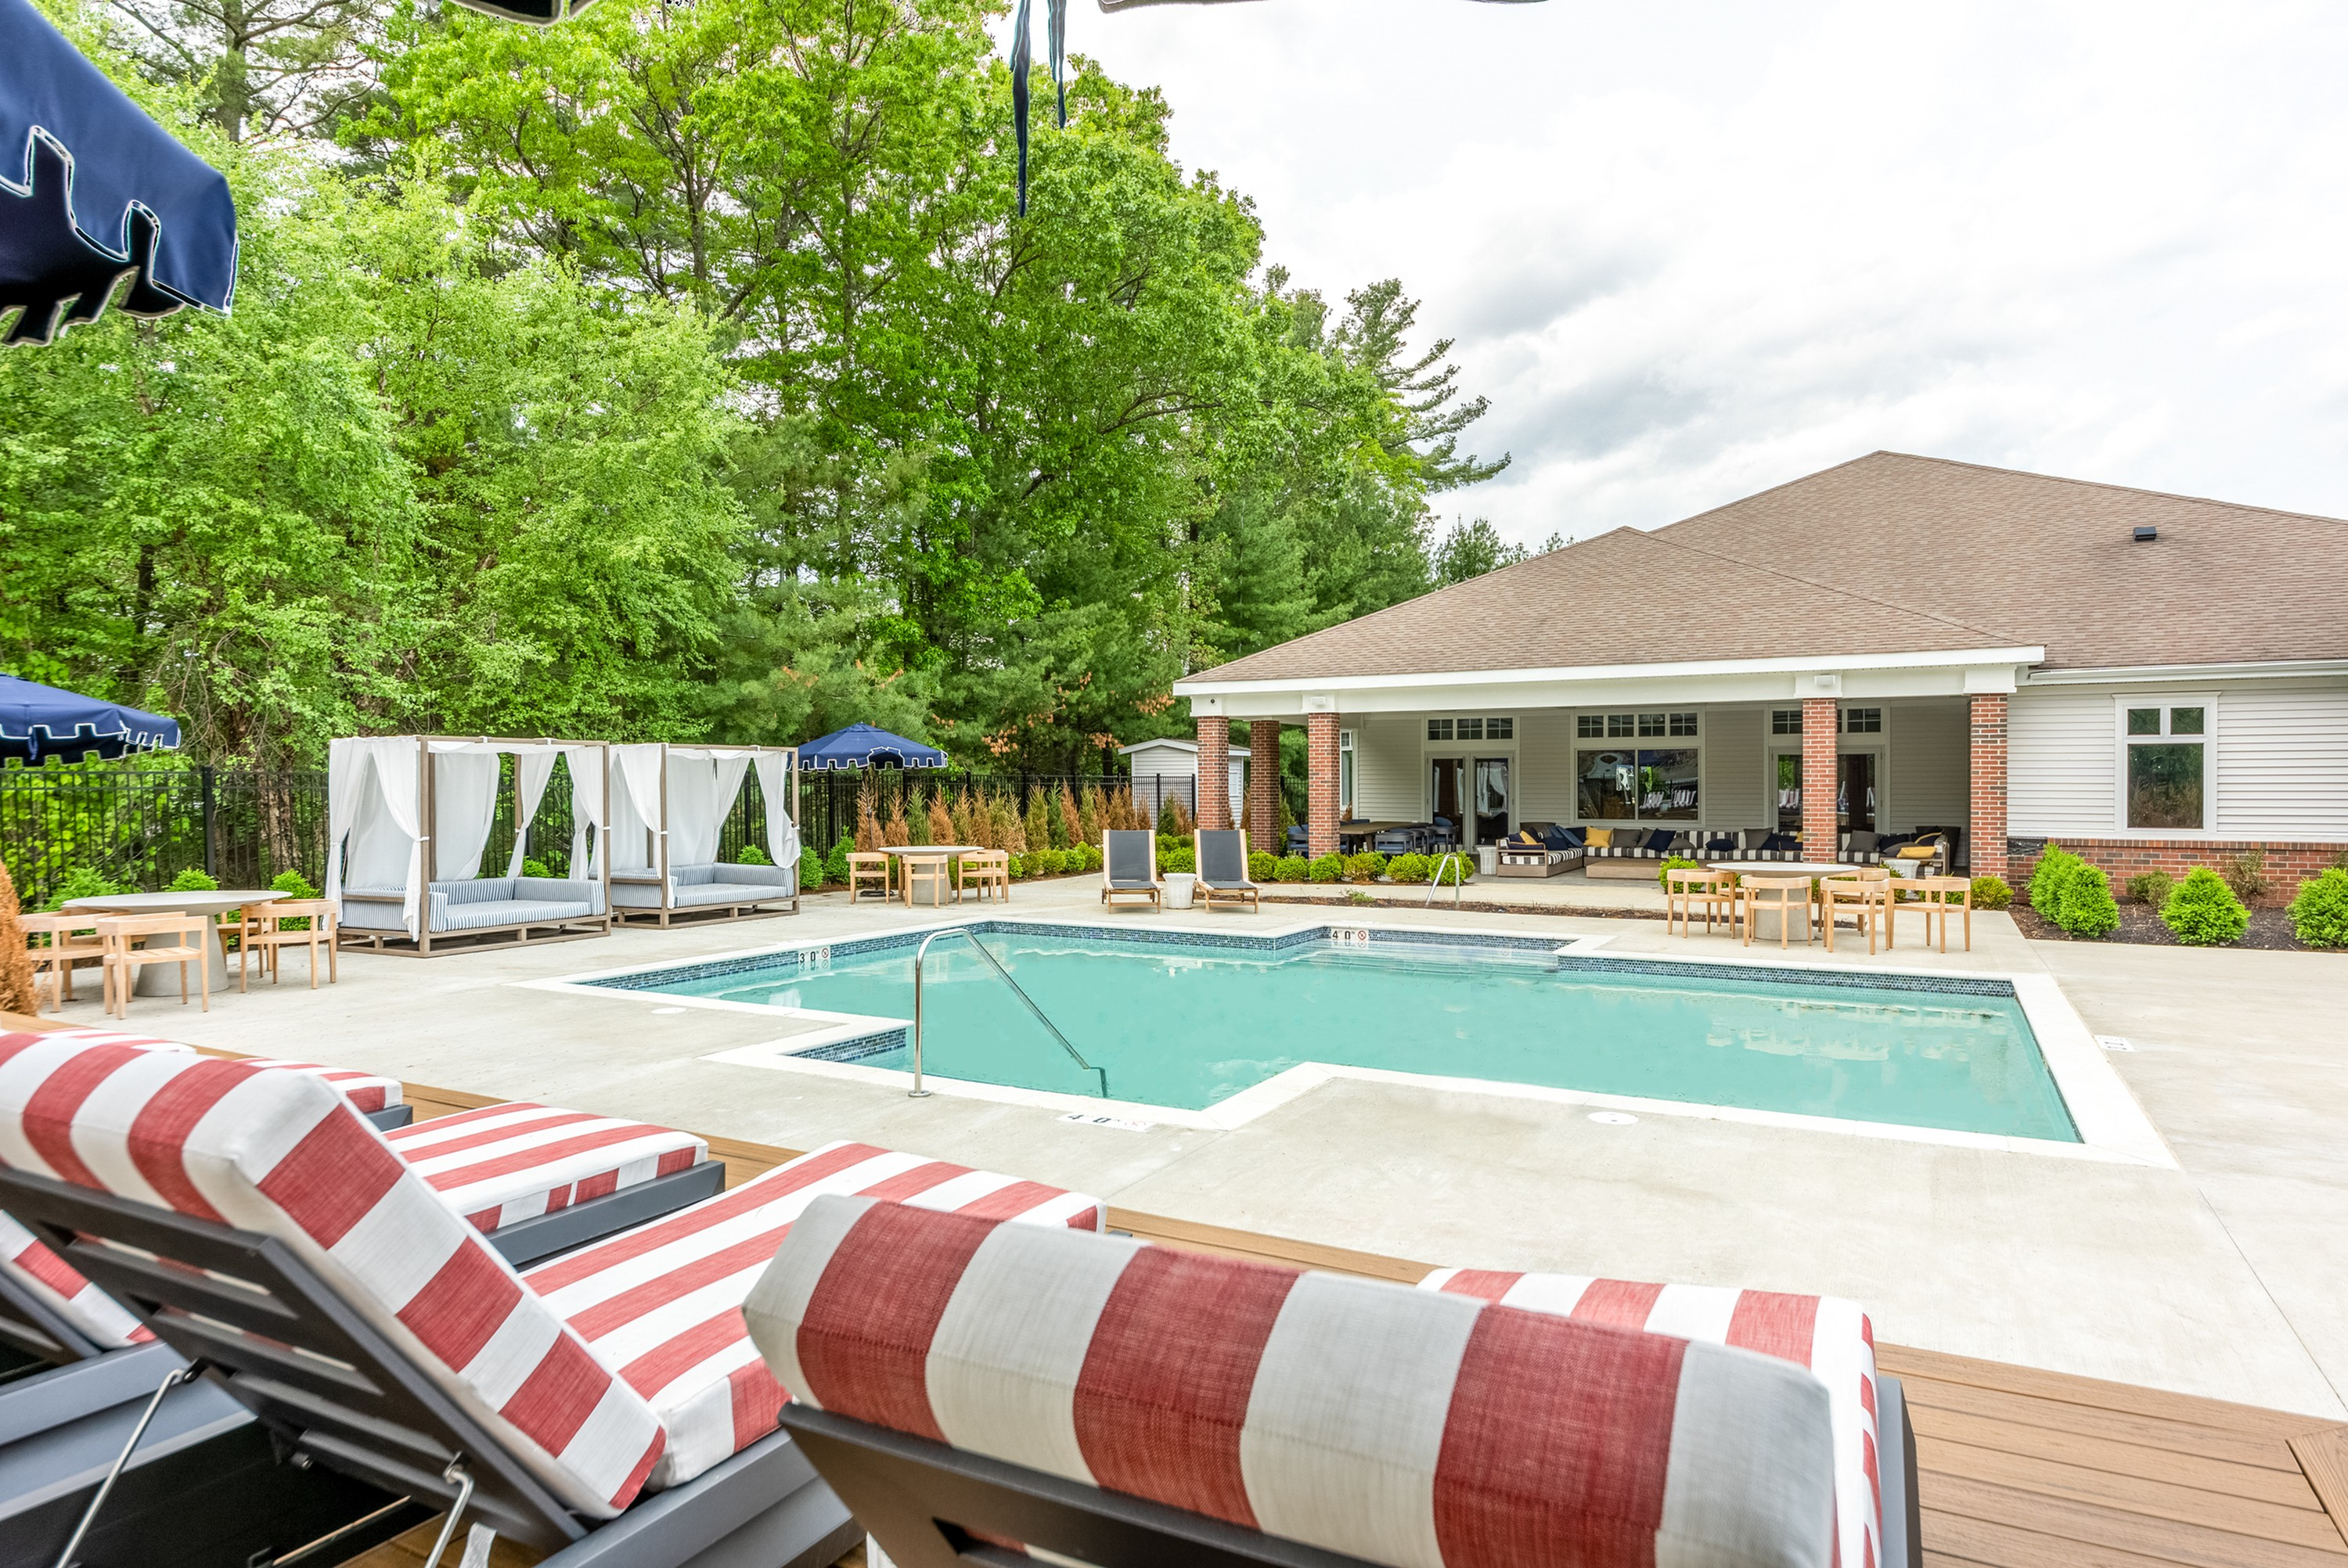 Apartments Near Merrimack Residences at Tewksbury Commons for Merrimack College Students in North Andover, MA